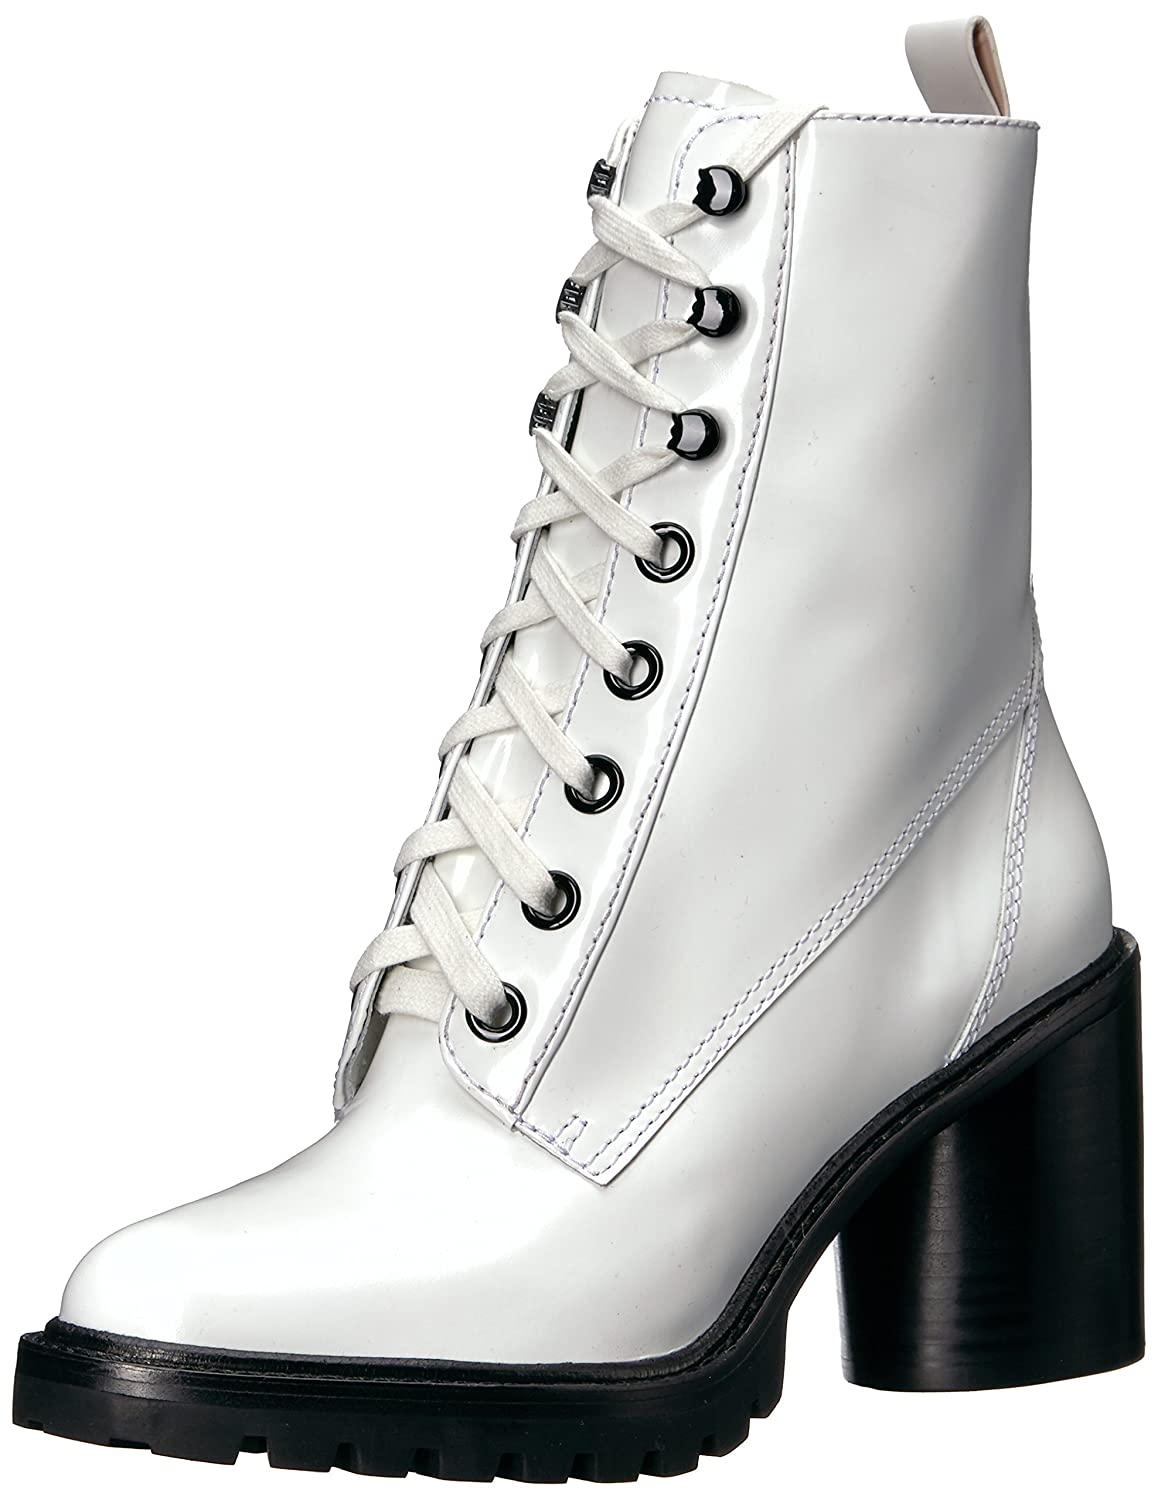 Marc Jacobs Women's Ryder Lace up Ankle Boot B0733C4W3Q 36 M EU (6 US)|White